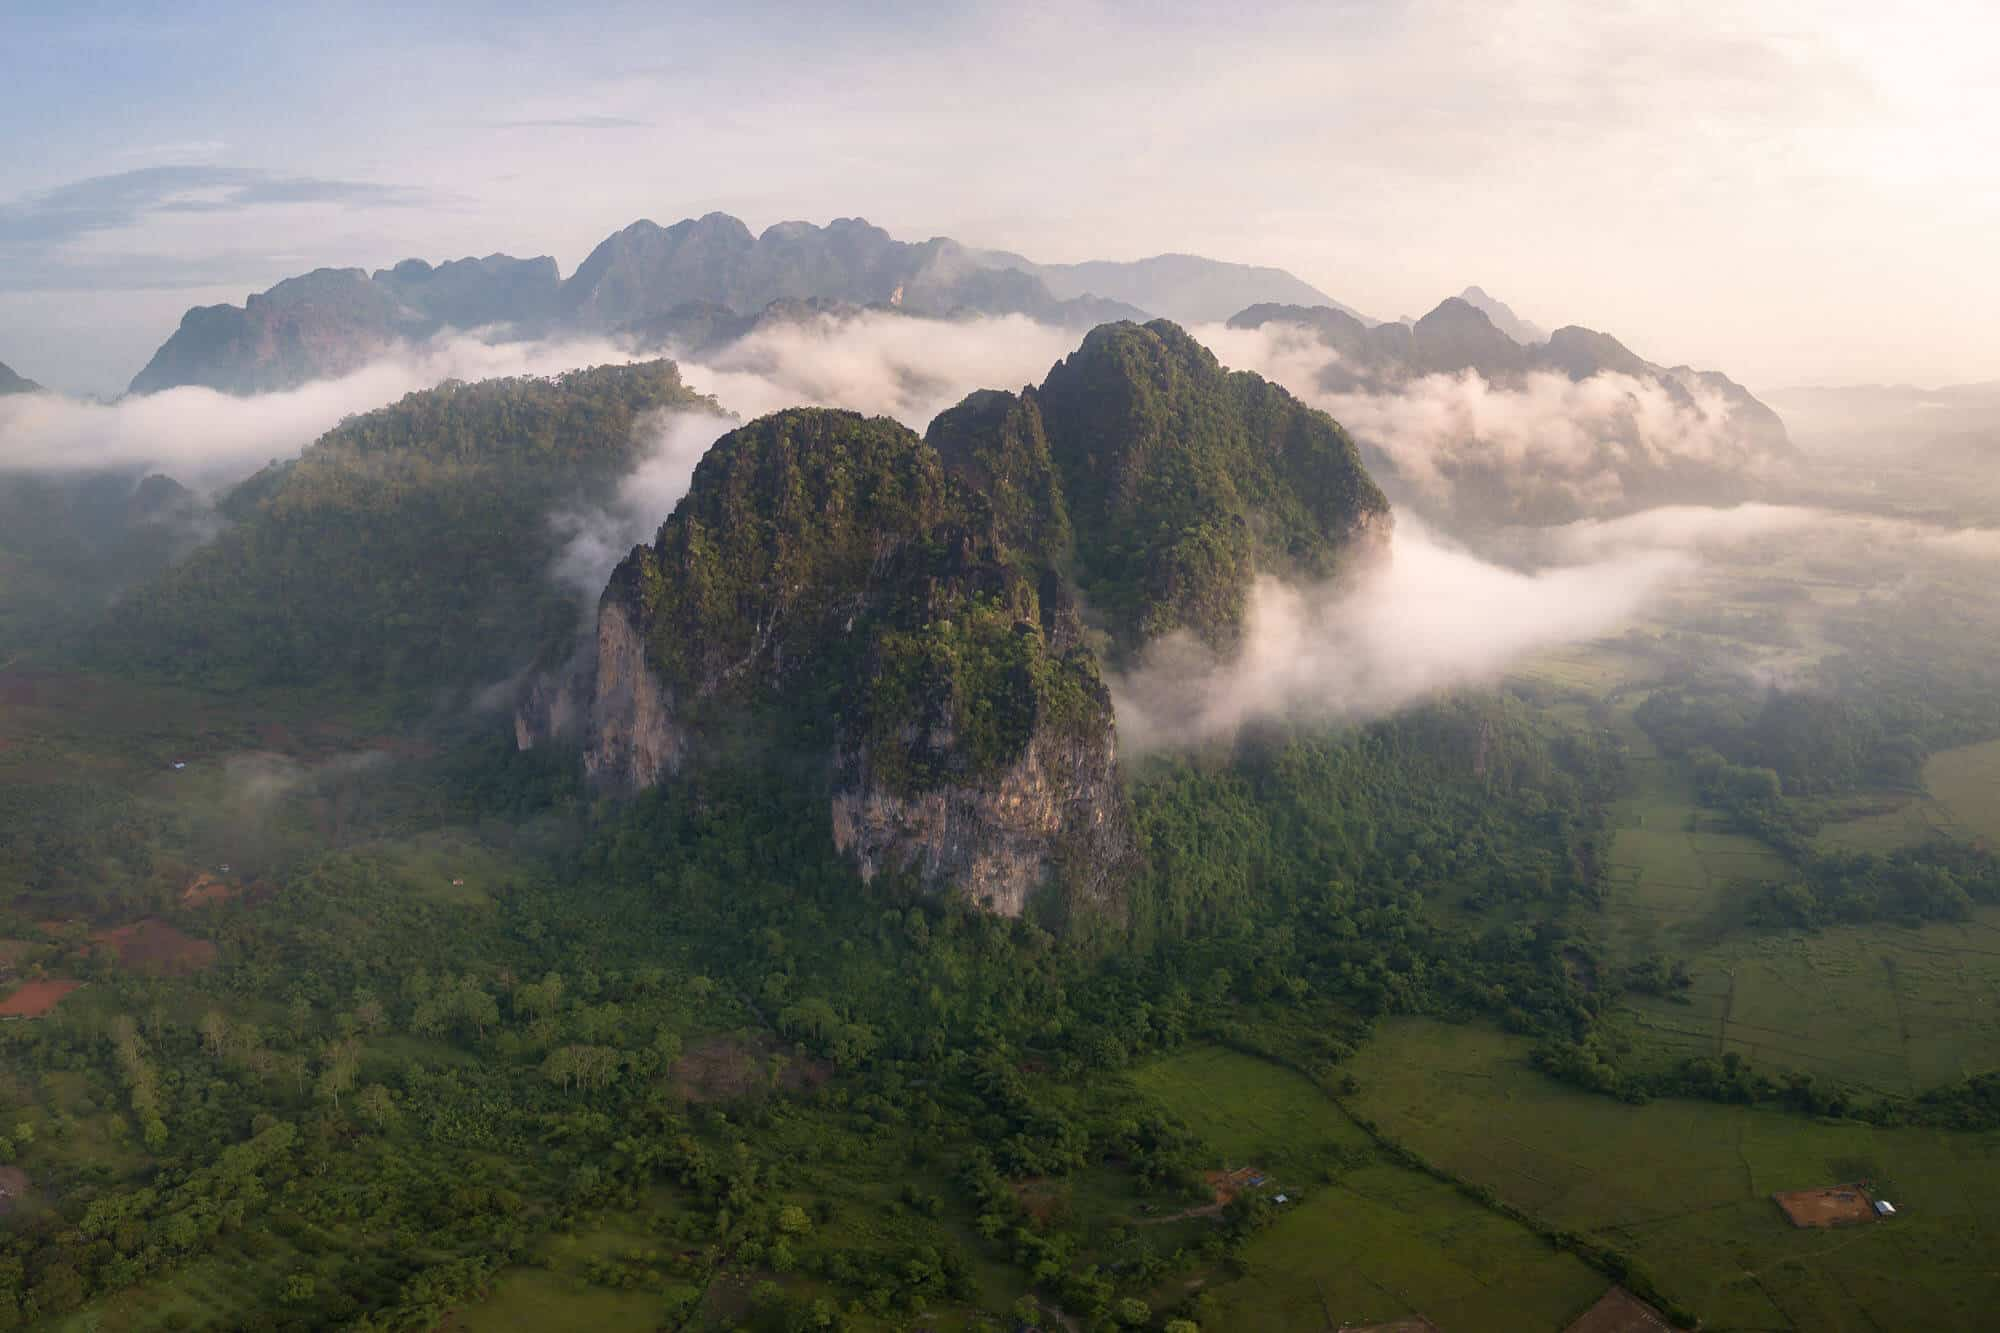 The mountains of Vang Vieng embraced by moody morning clouds